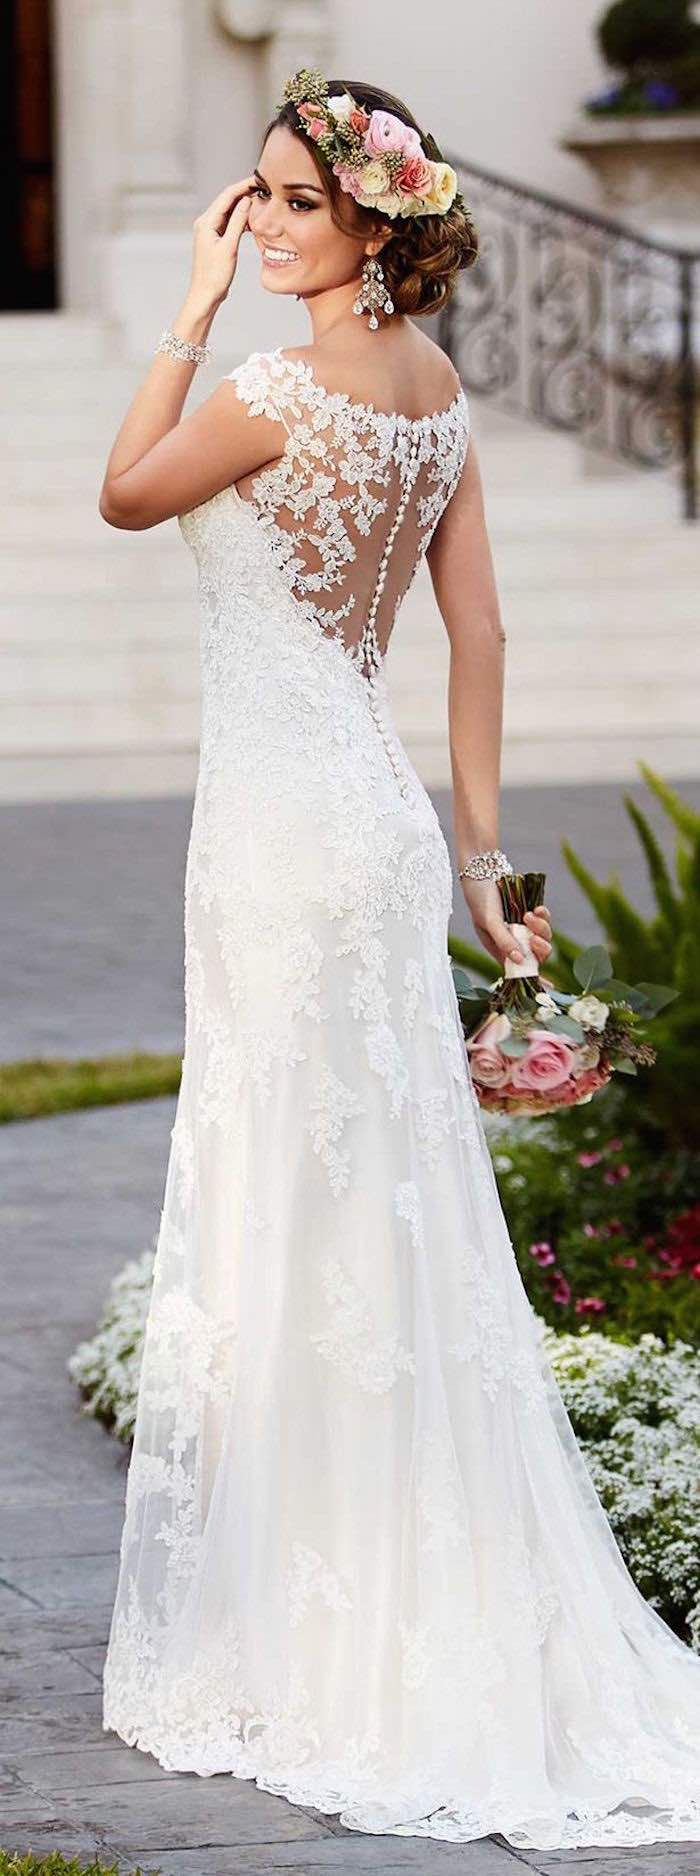 Gorgeous Stella York lace #wedding dress looks amazing for this summer floral crown. #WeddingDress